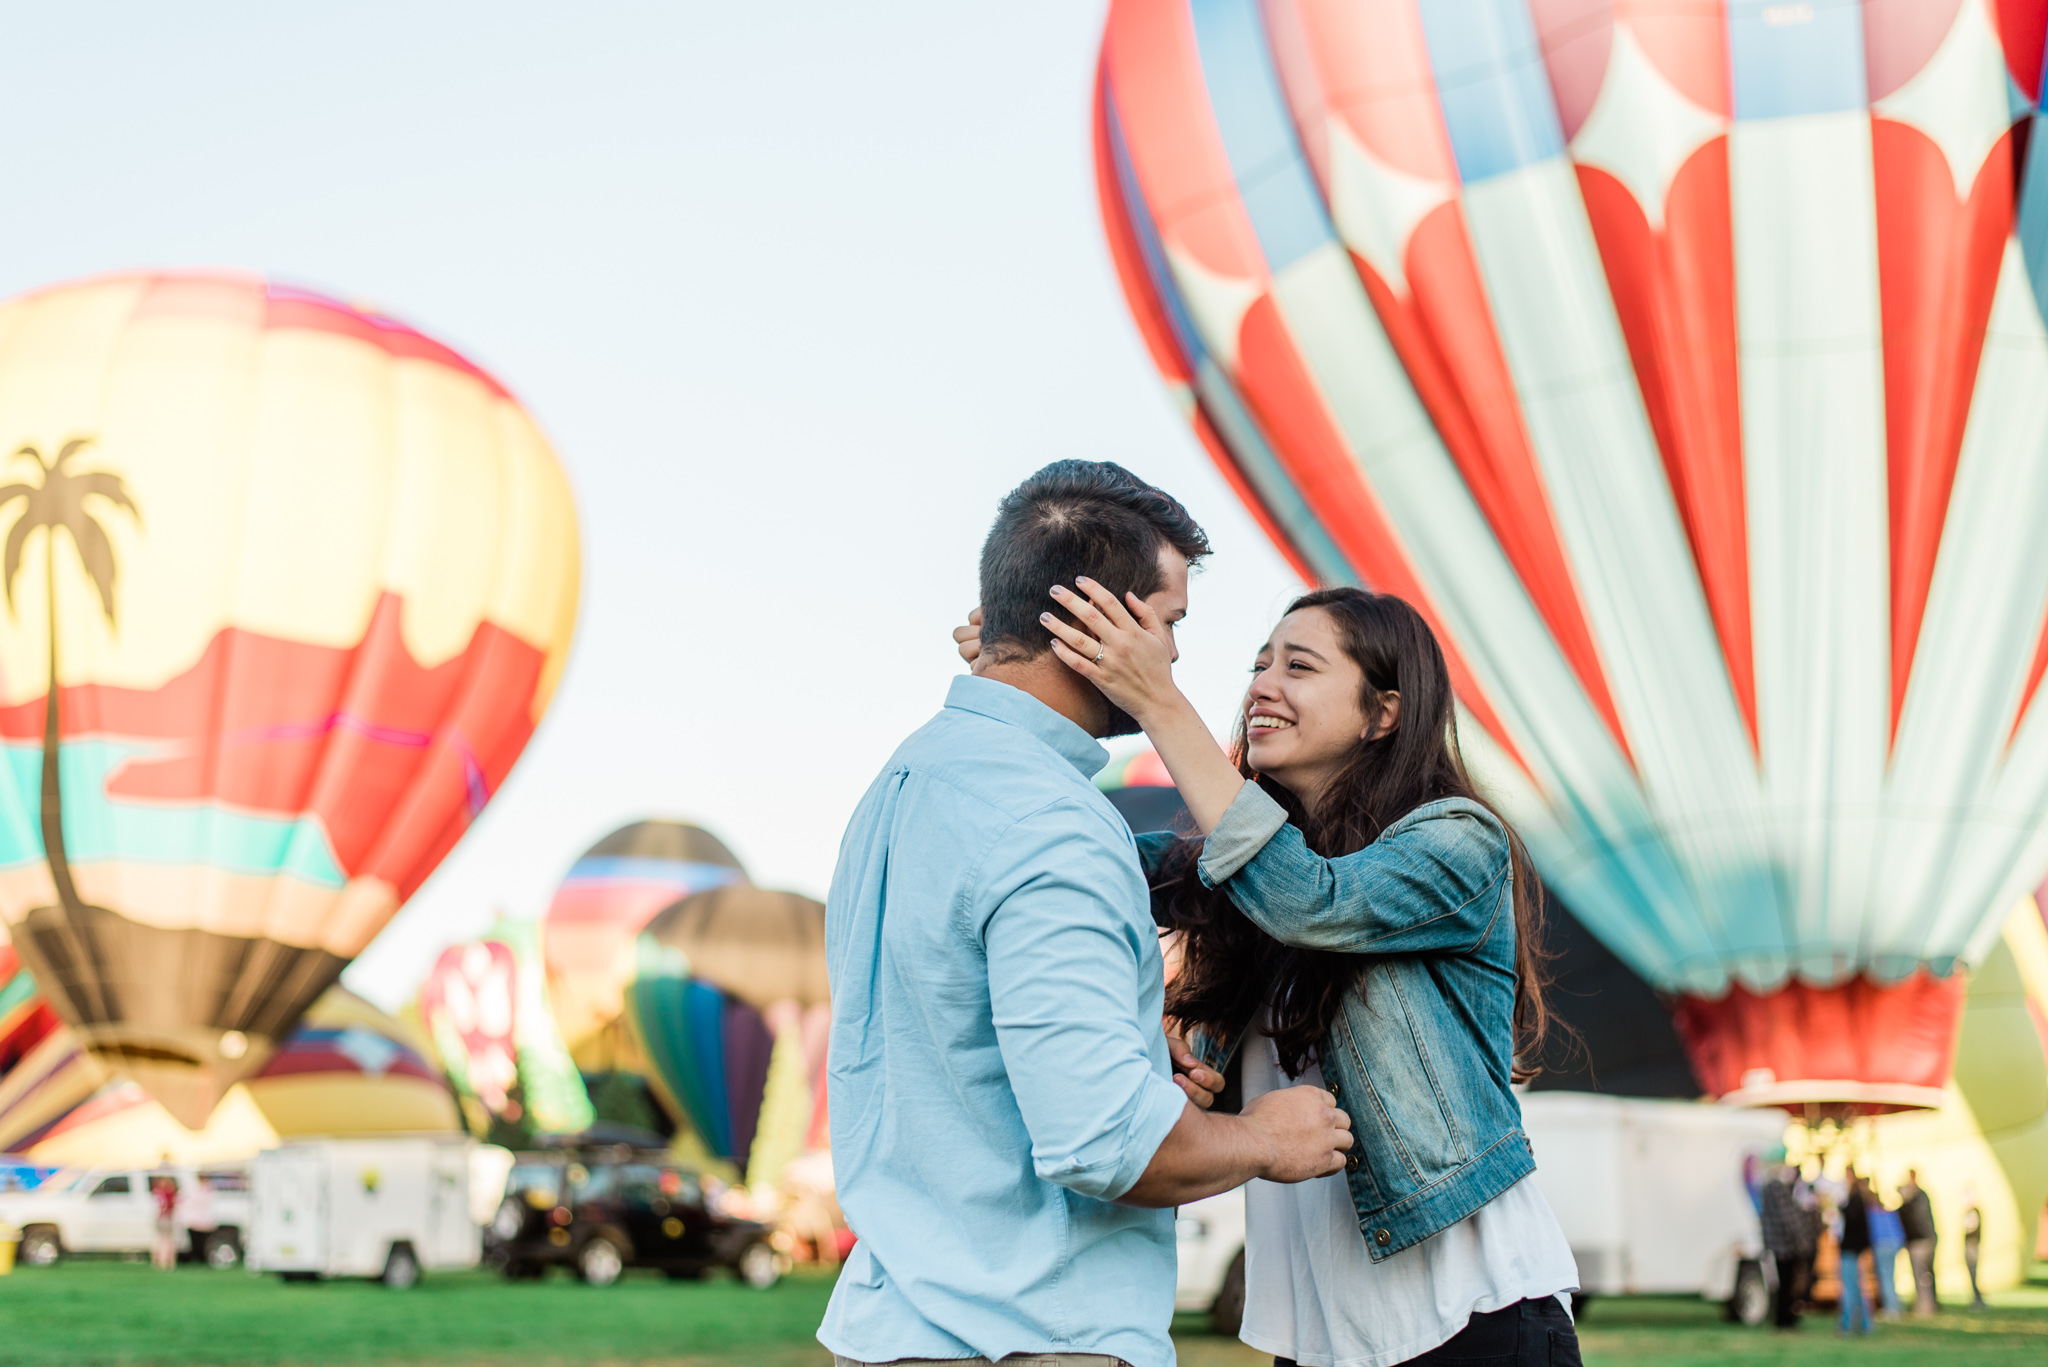 Boise Wedding Photographer / surprise proposal / proposal ideas / Idaho engagement photographer / Cozy Posing / PNW Engagement / Idaho Engagement Session / Natural Couples Posing Ideas / hot air balloons / spirit of boise balloon classic / couples session / engagement session / couples Outfit Ideas / cute couples outfit / casual outfit / Summer couples session / aesthetic / boise couples photographer / SS Photography & Design / Sadie Shirts